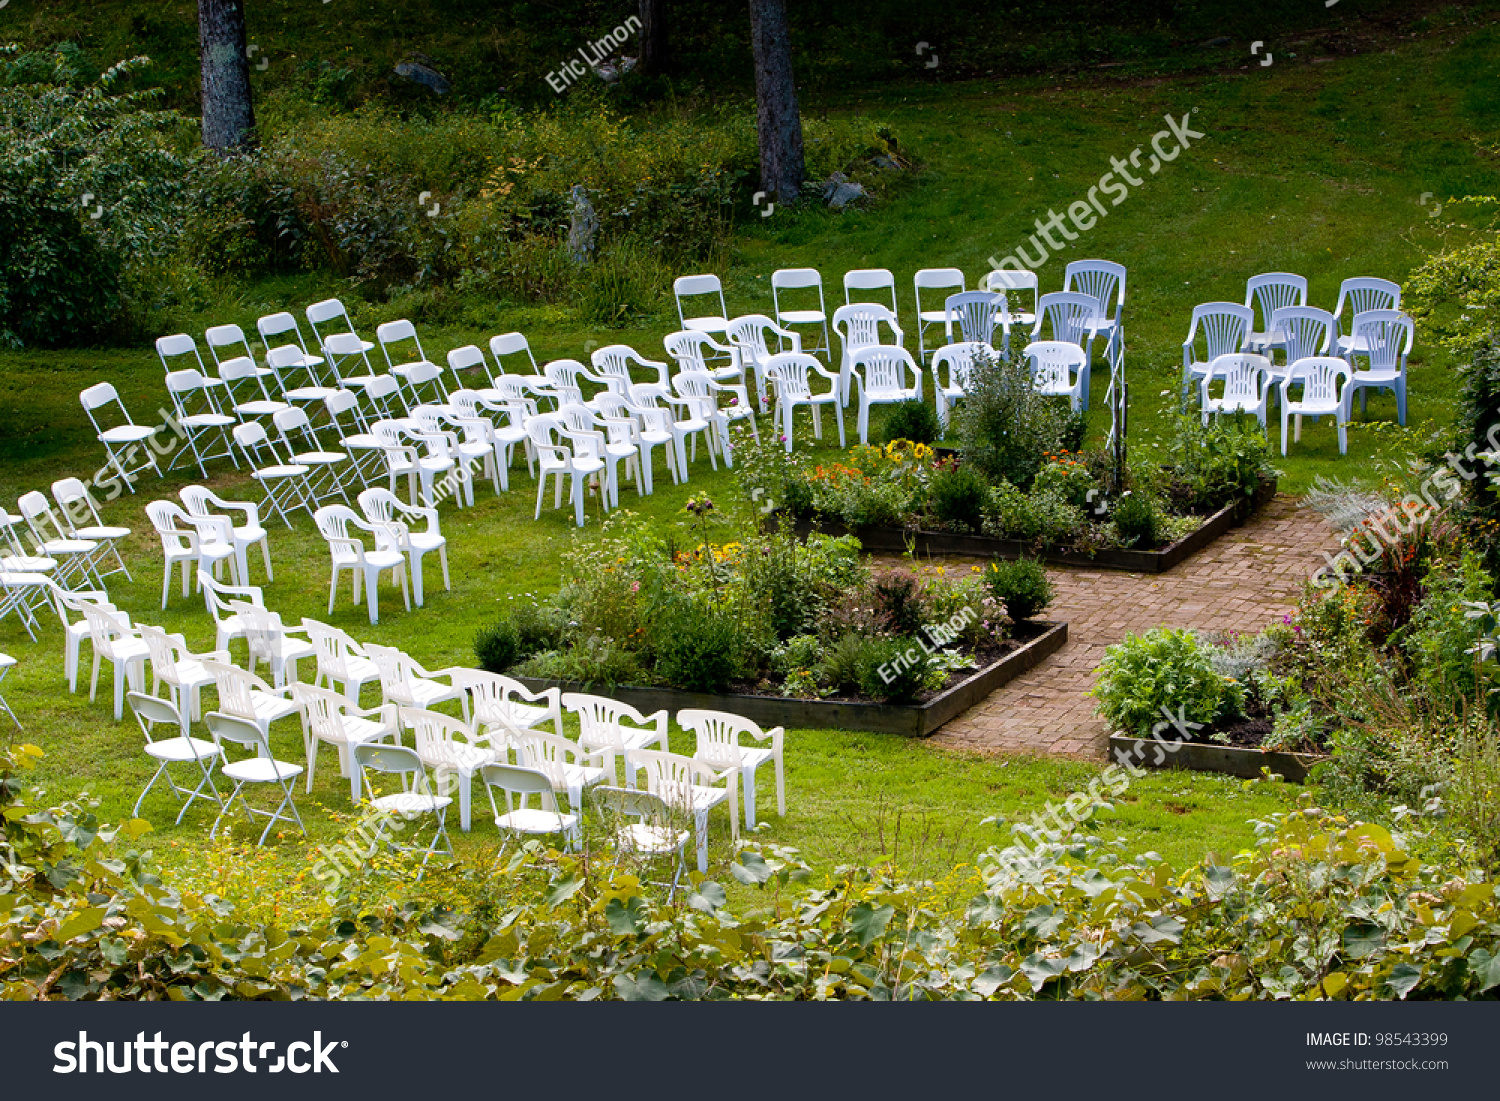 Wood Chairs Outdoor Ceremony: An Area Set Up With Chairs For An Outdoor Wedding Ceremony